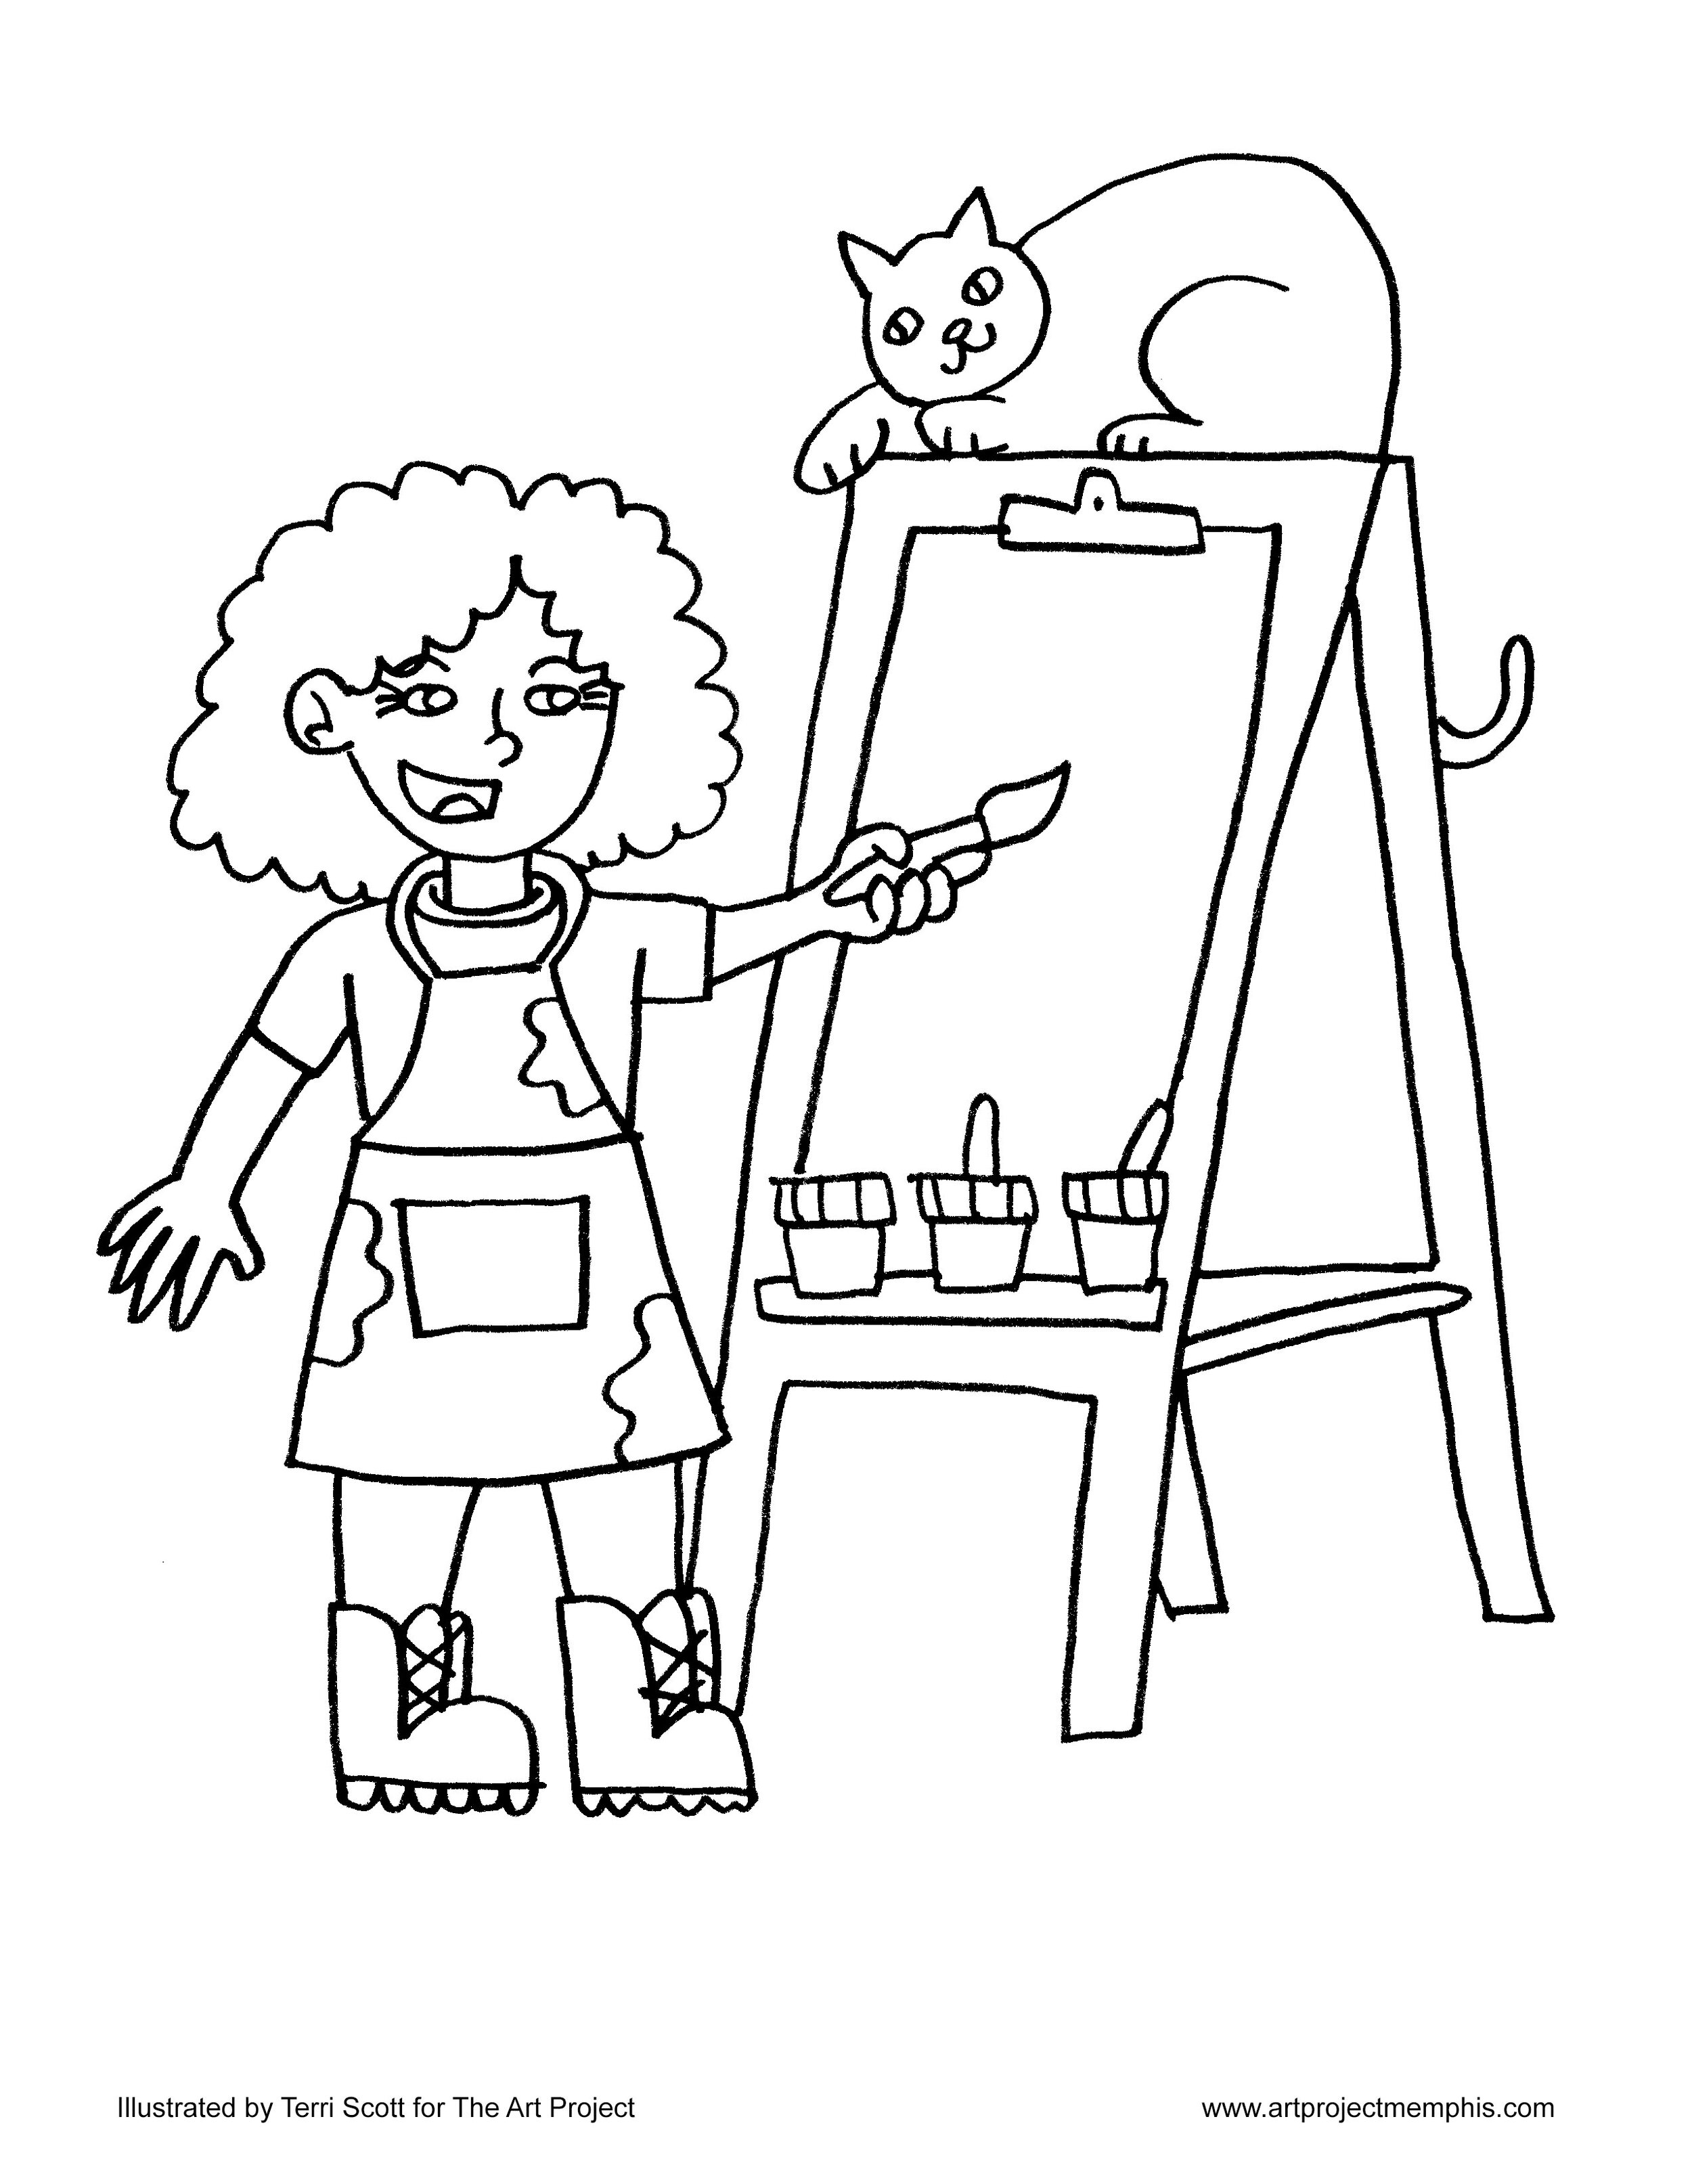 Coloring Sheets — The Art Project